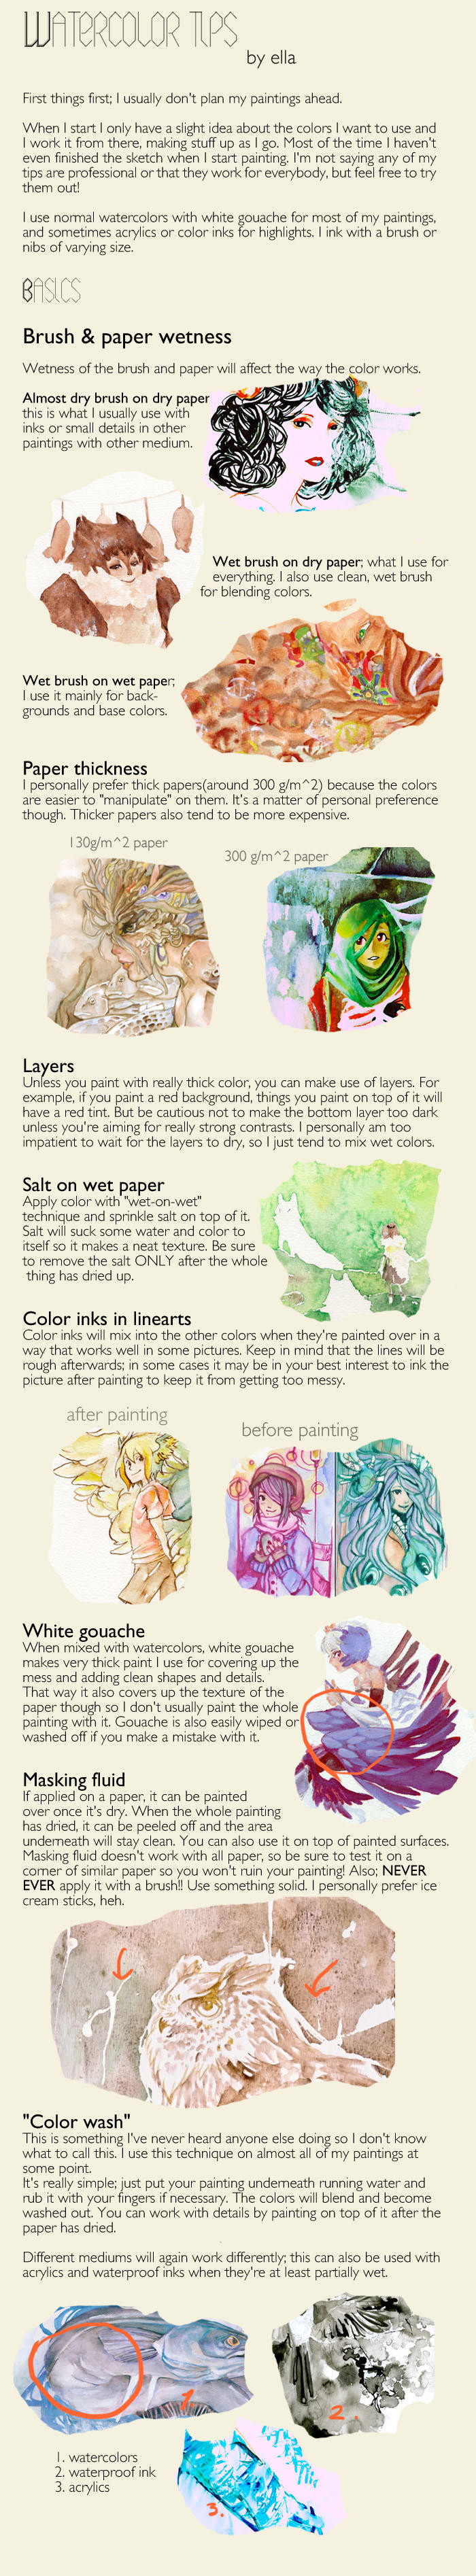 Watercoloring tips by dodostad